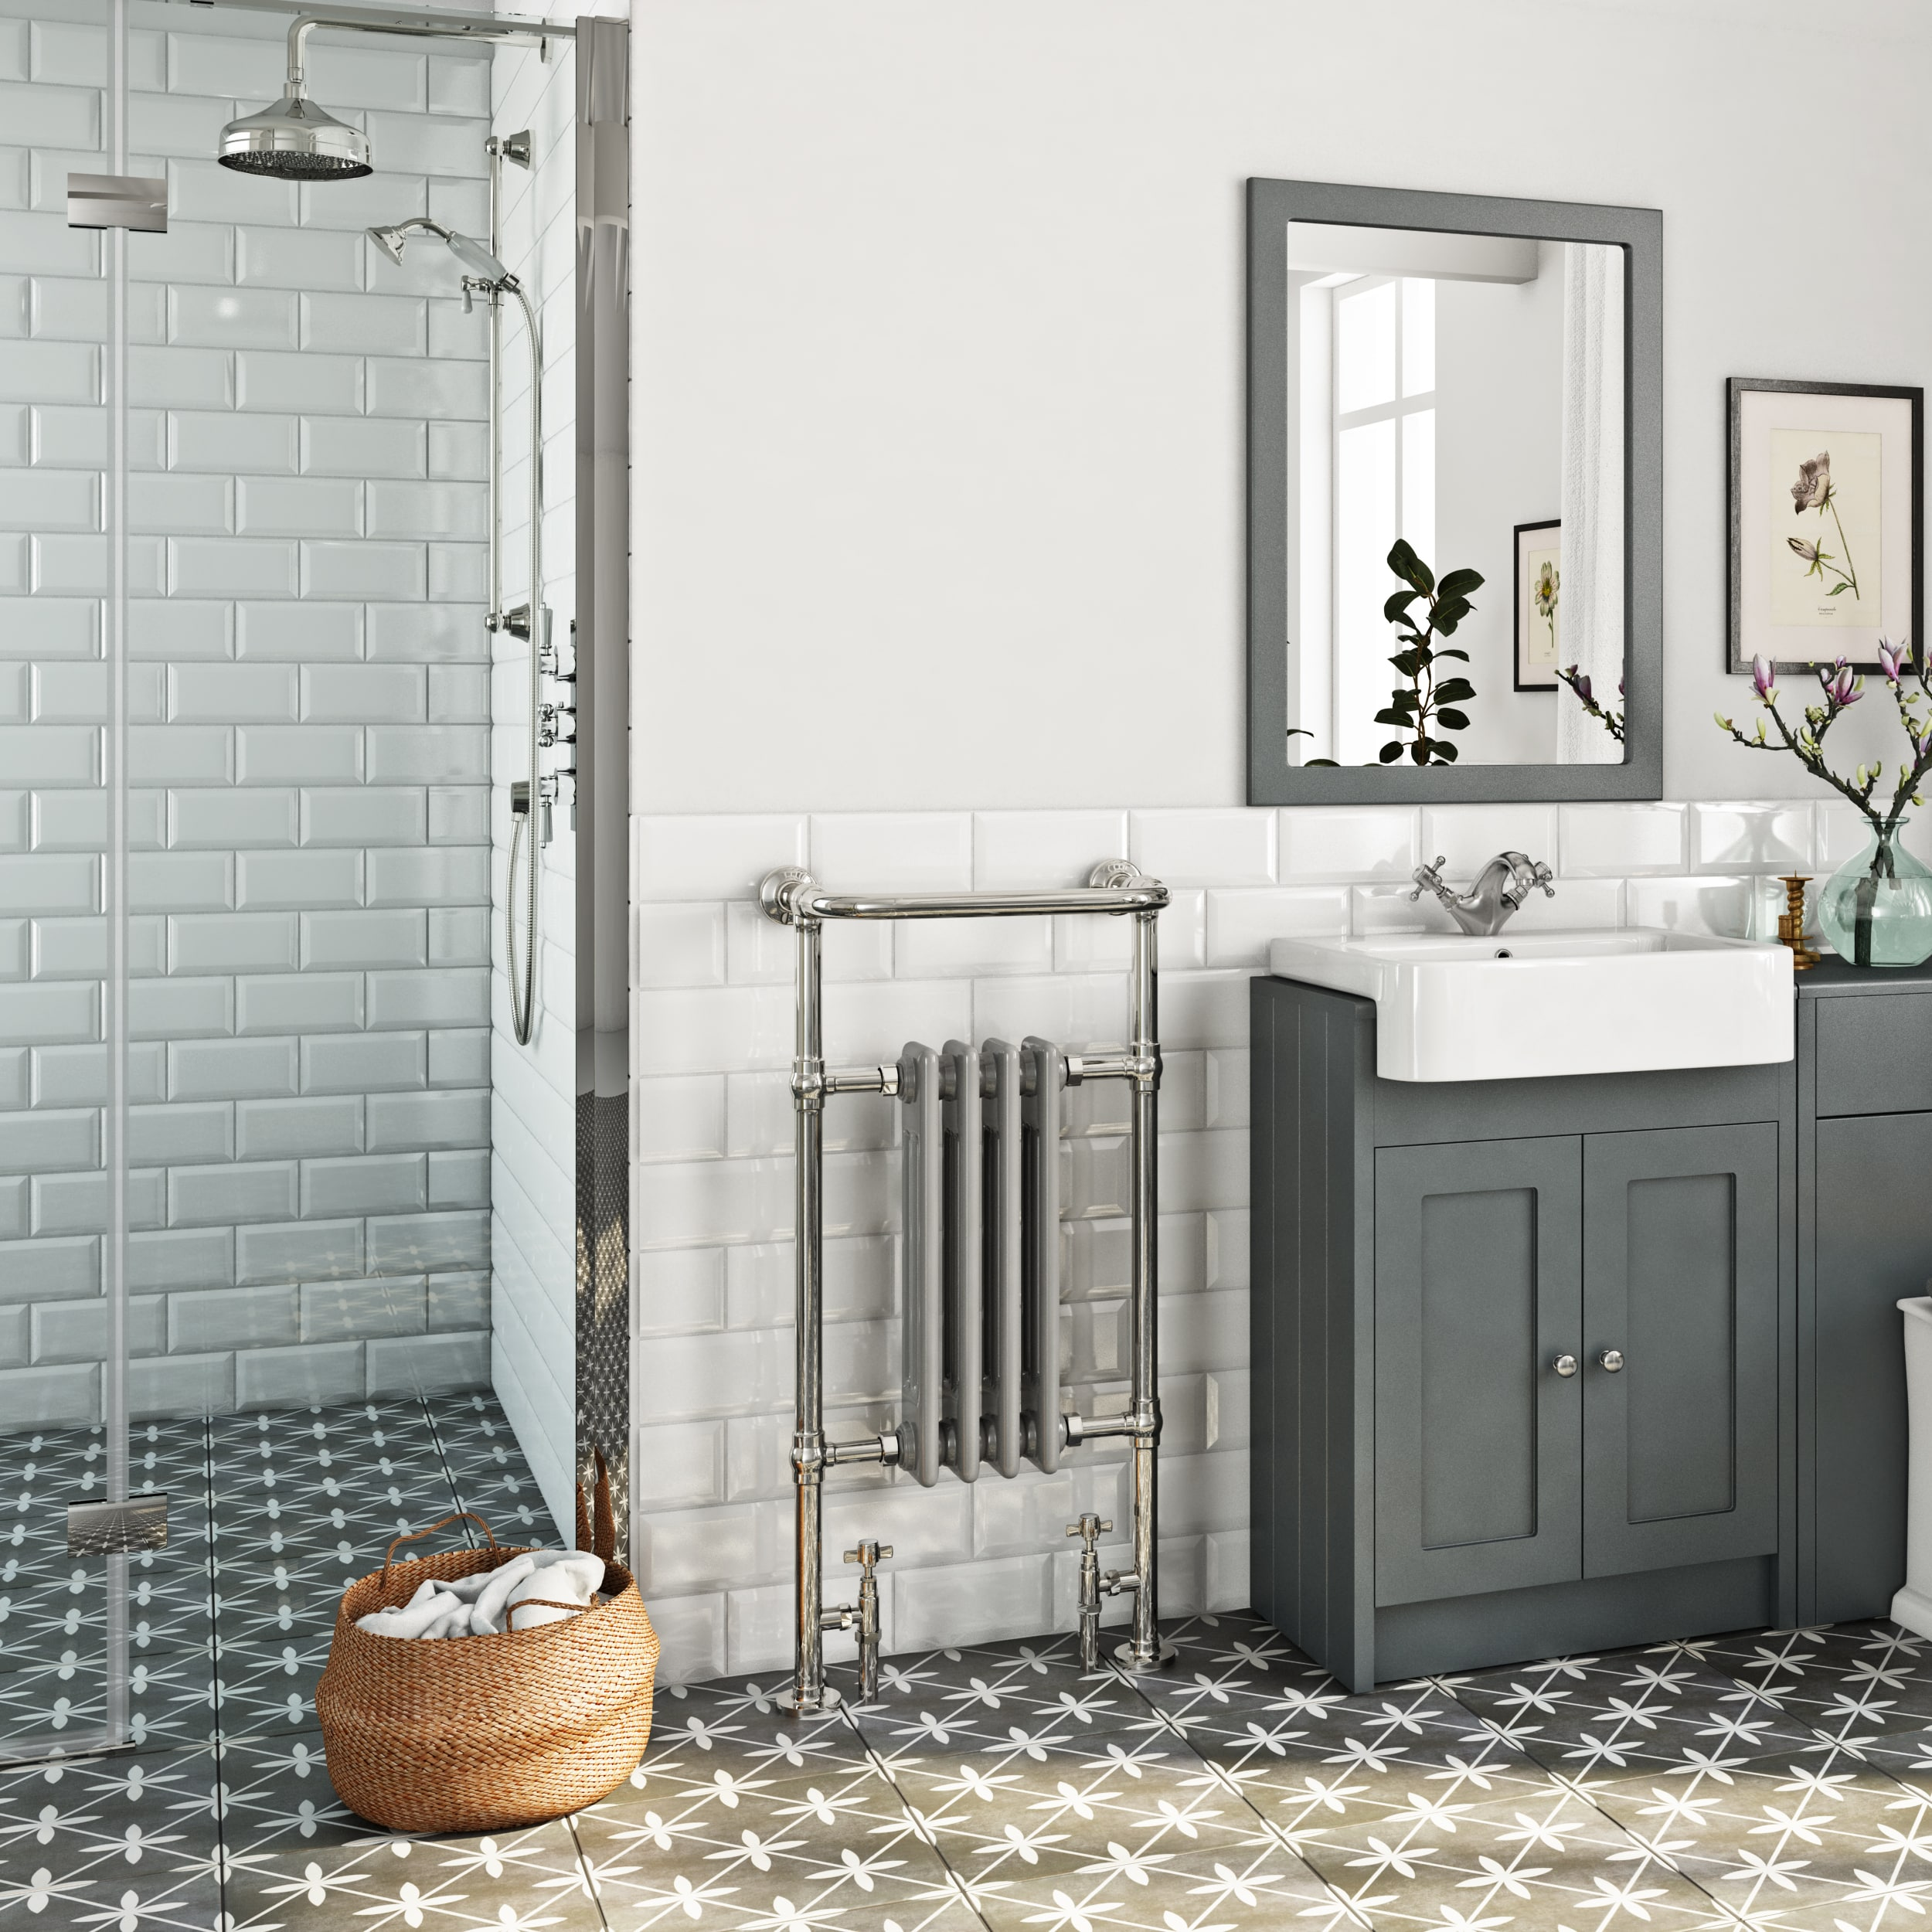 height basins and toilets